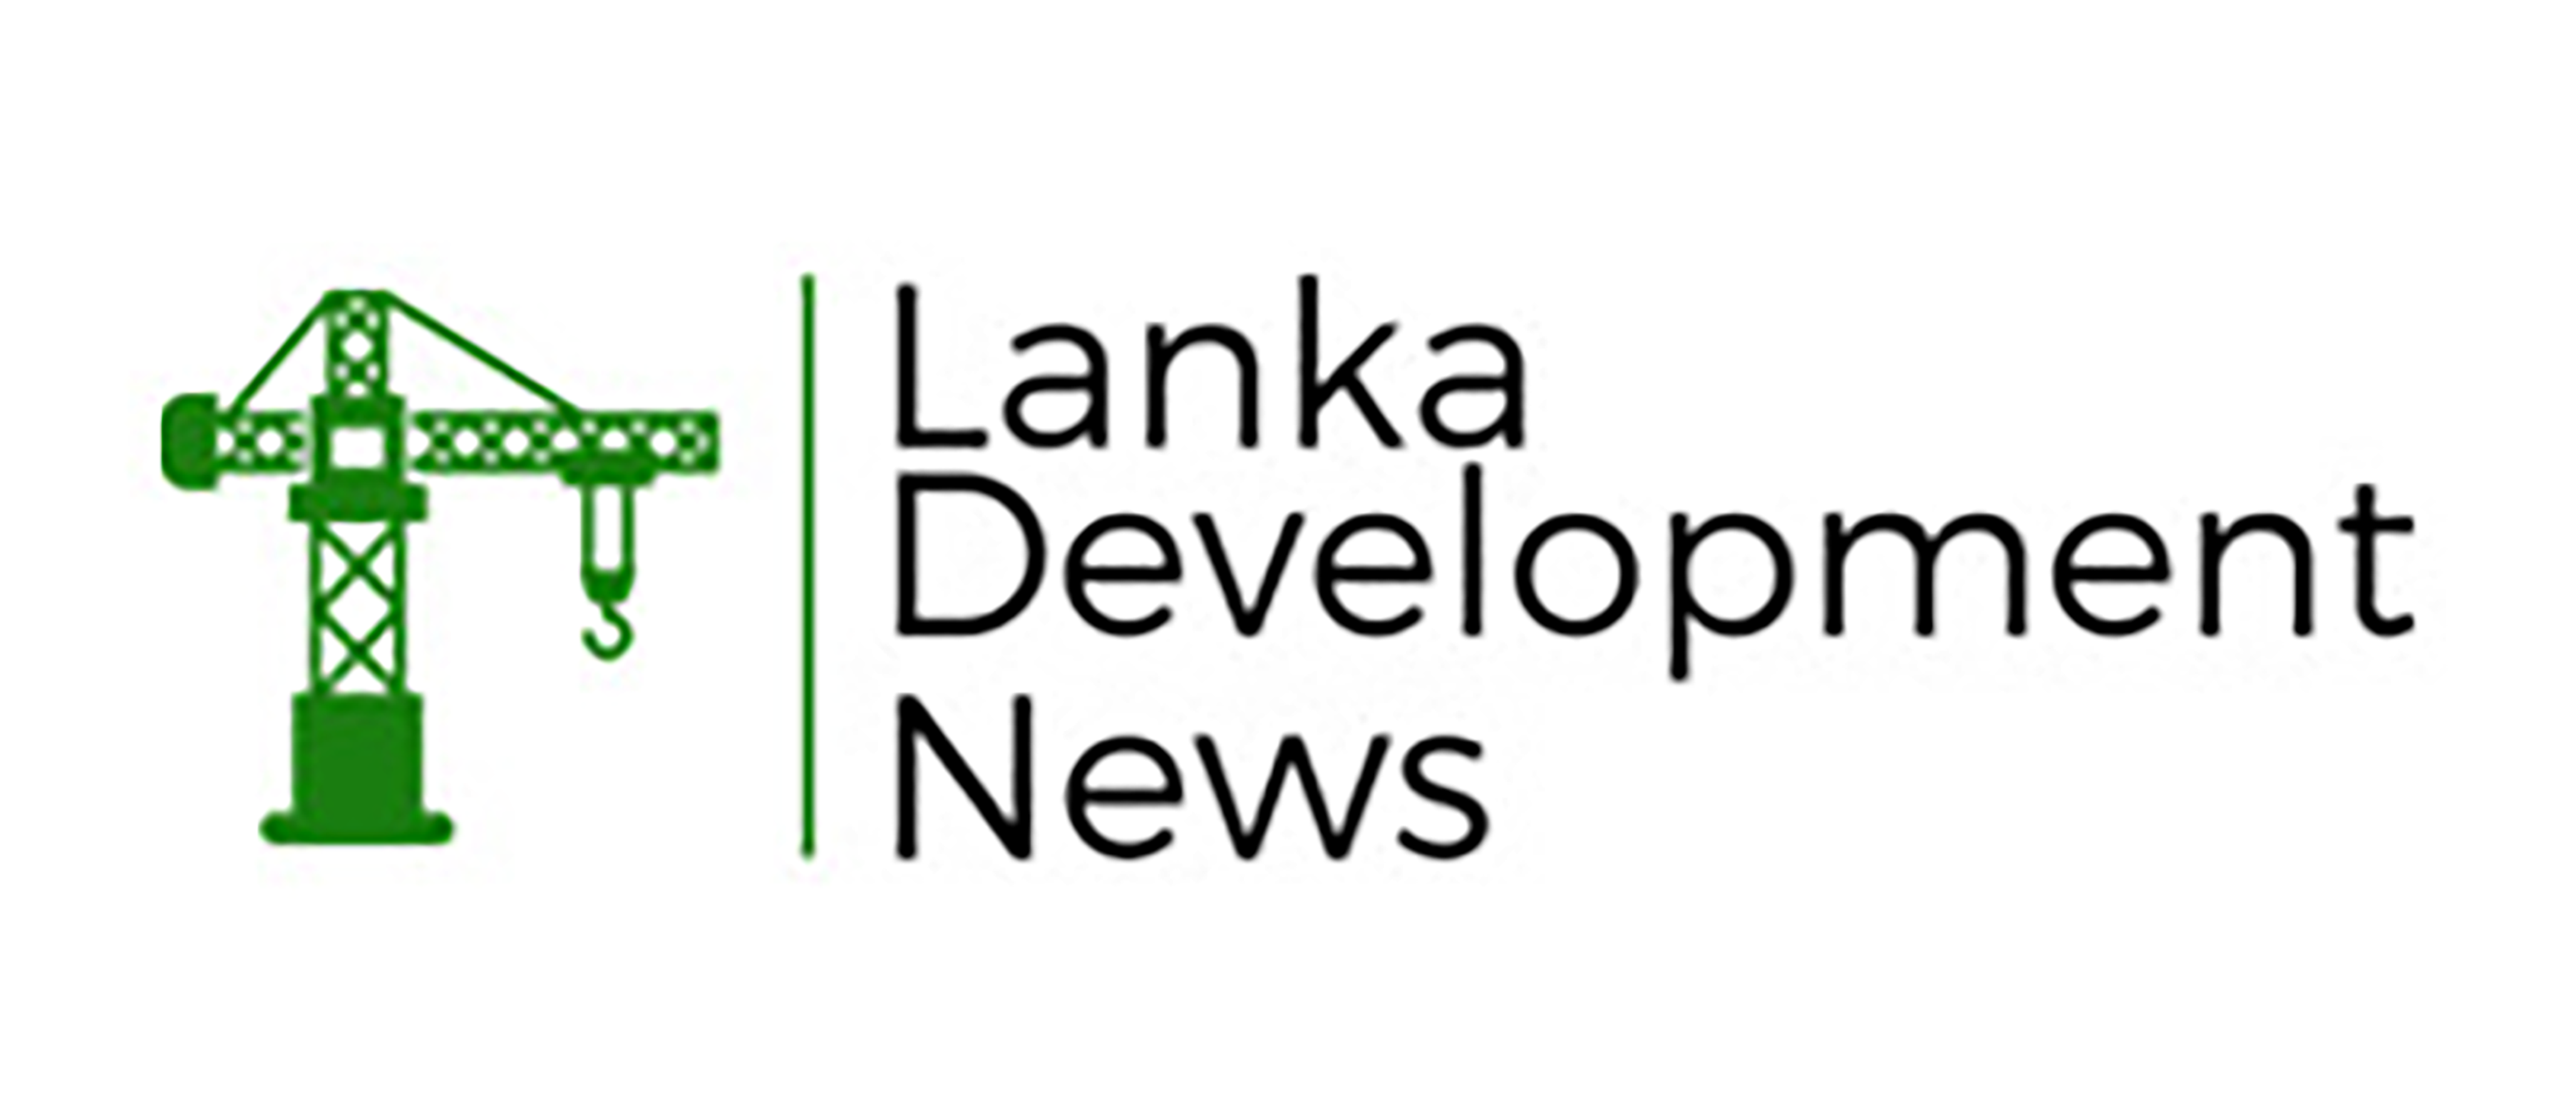 LANKA DEVELOPMENT NEWS